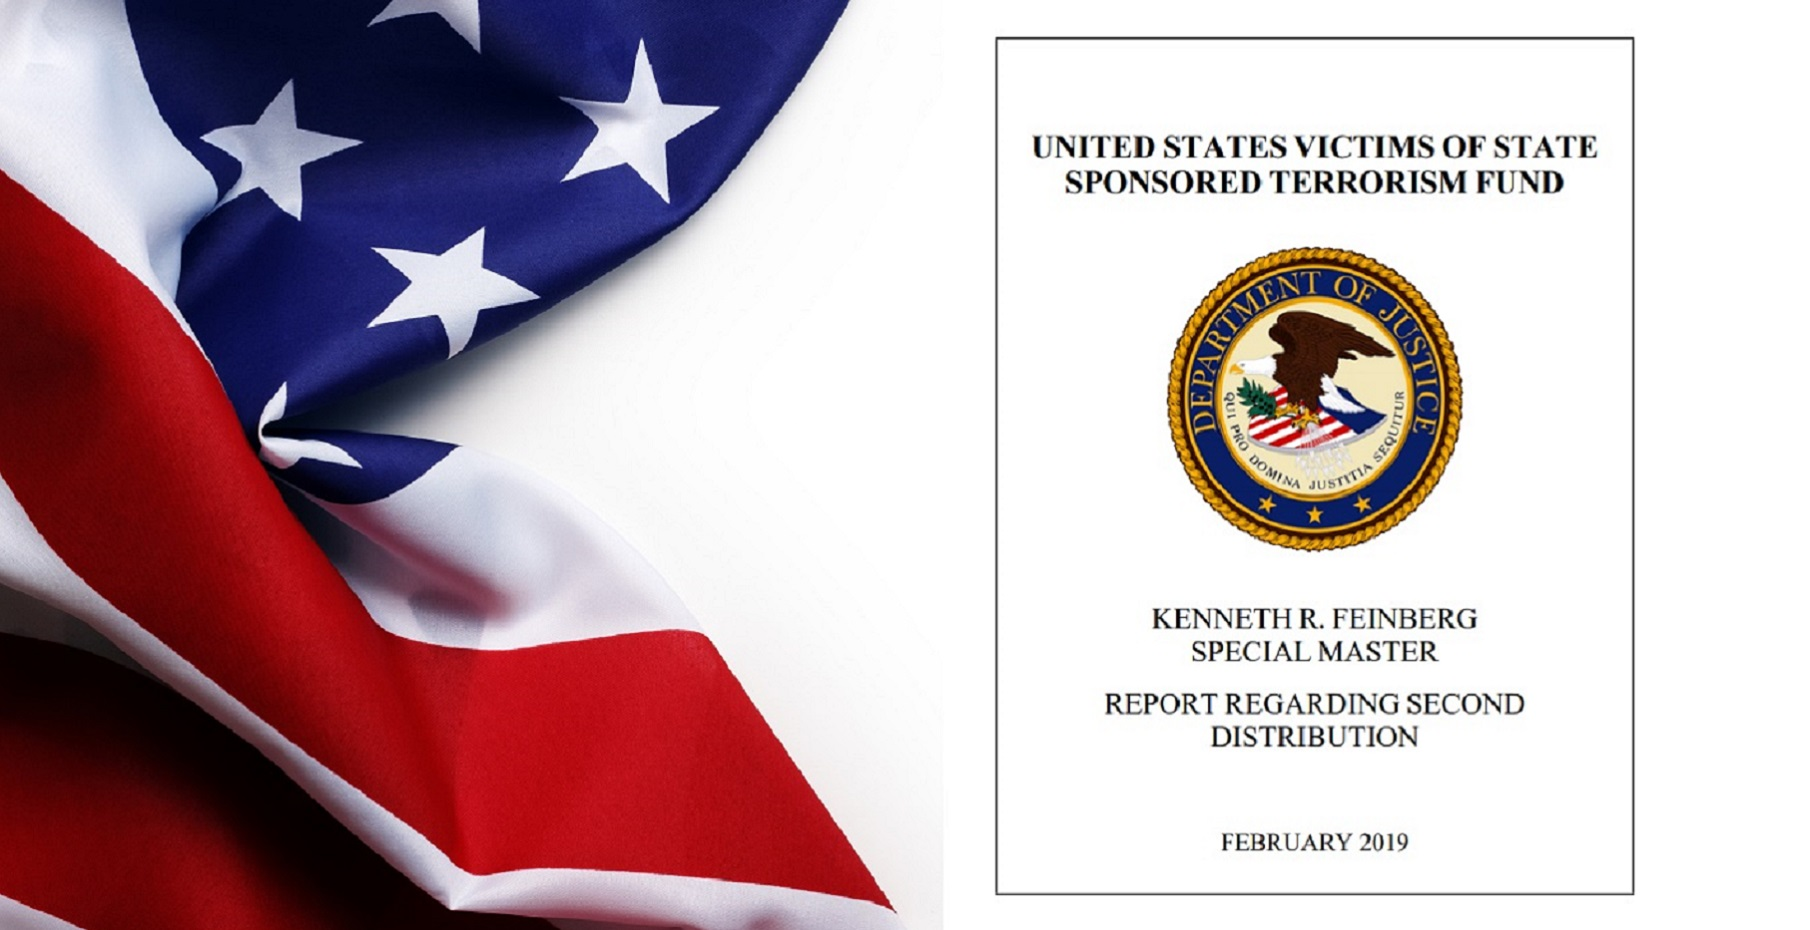 The United States Victims of State Sponsored Terrorism Fund was established in 2015 to provide compensation to eligible service members, military contractors and their families who were victims of various acts of state-sponsored terrorism.